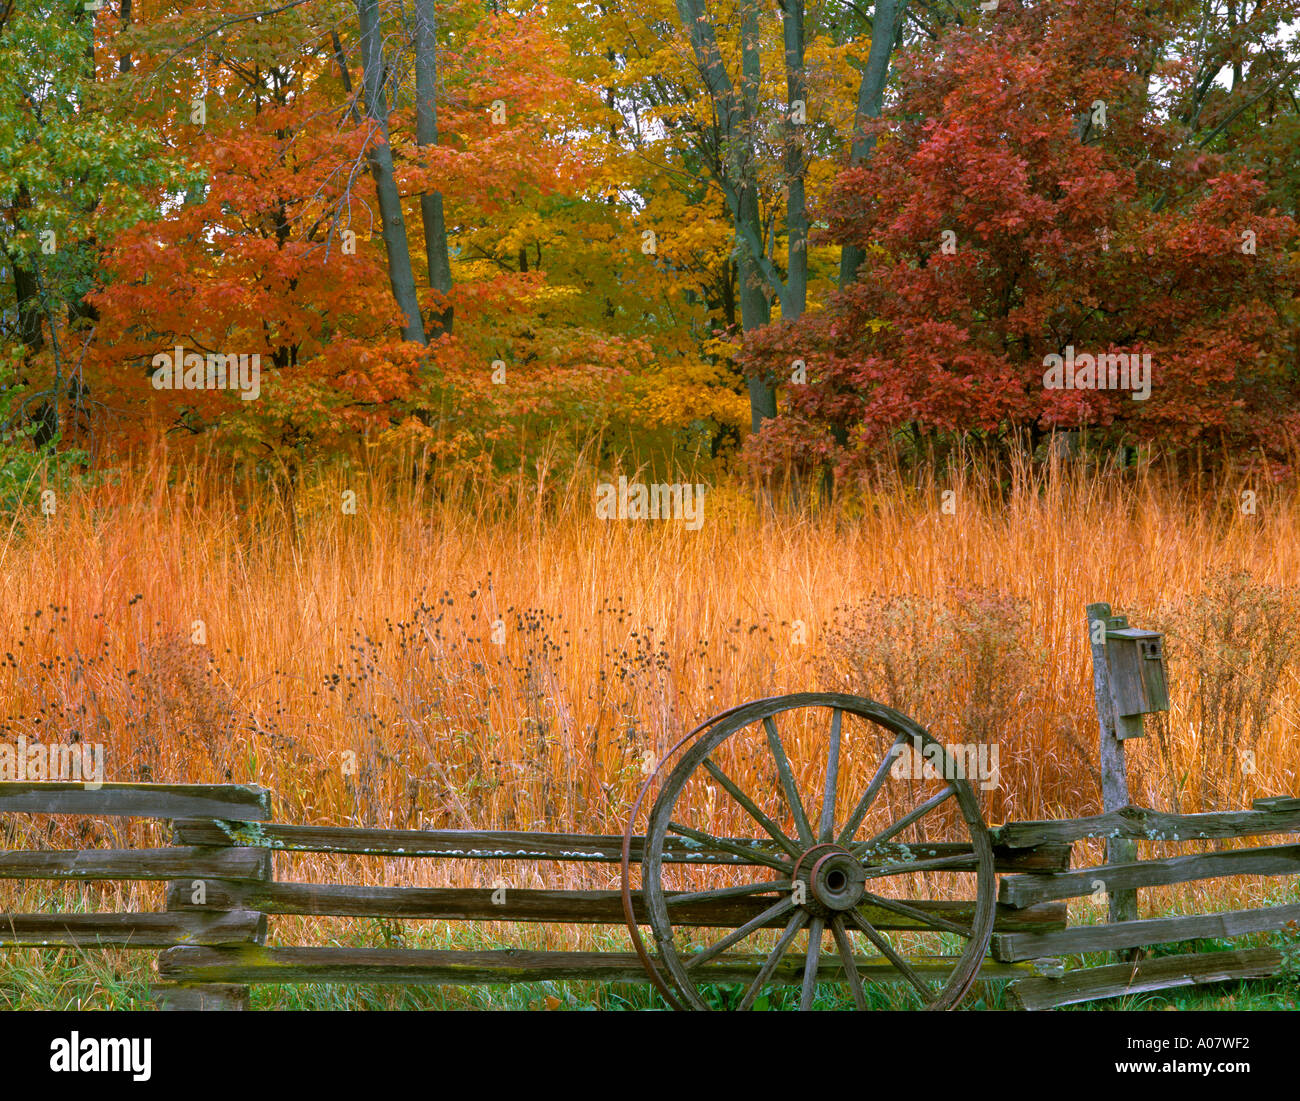 Illinois bureau county princeton - Bureau County Il Split Rail Fence And Tall Grass Praire At The Edge Of An Oak Maple Hardwood Forest In Fall Color